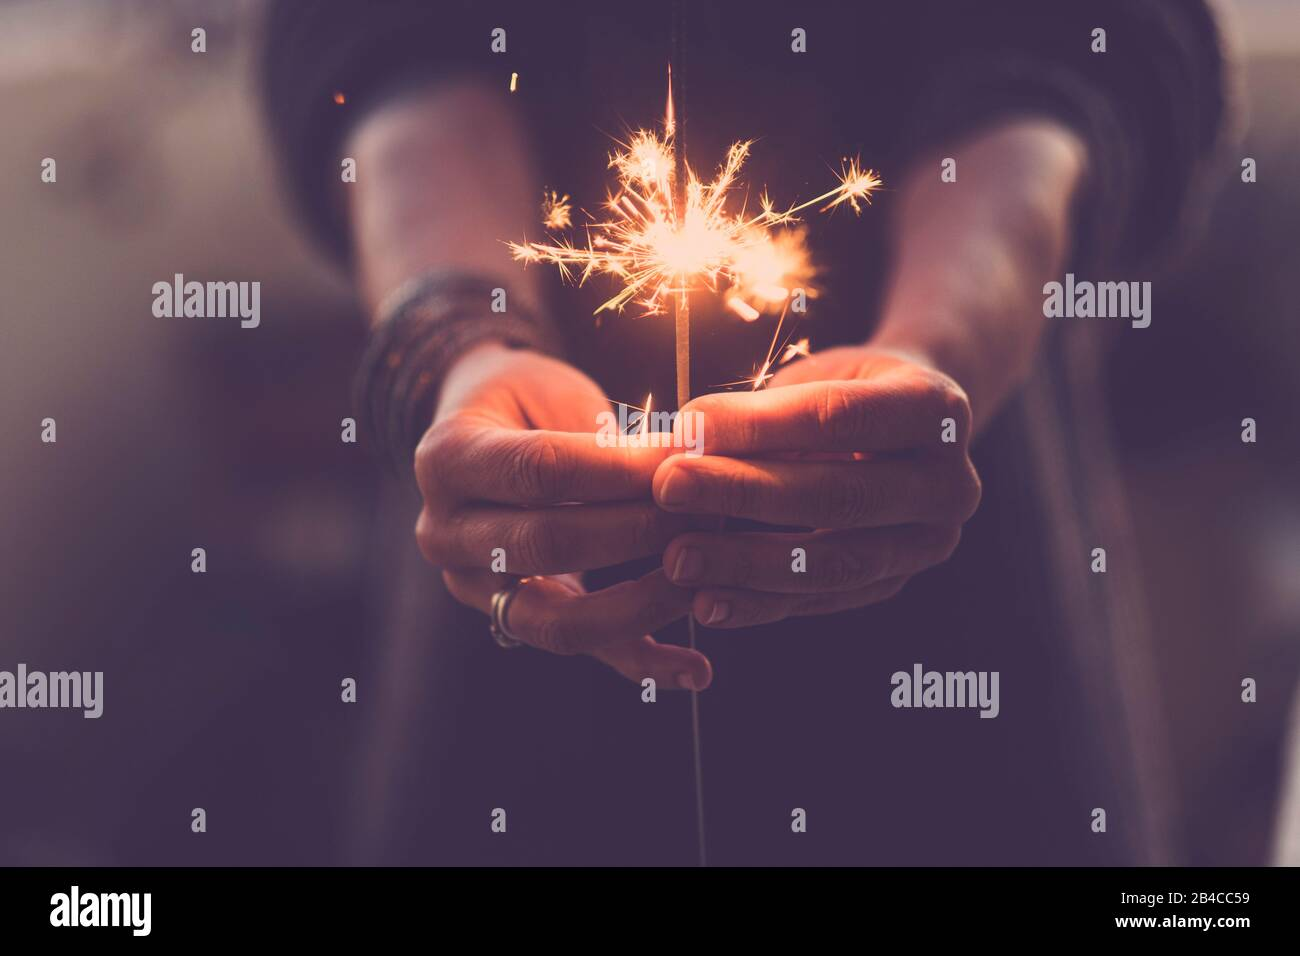 Concept of party nightlife and new year eve 2020 - close up of people hands with red fire sparklers to celebrate the night and the new start - warm colors filter Stock Photo